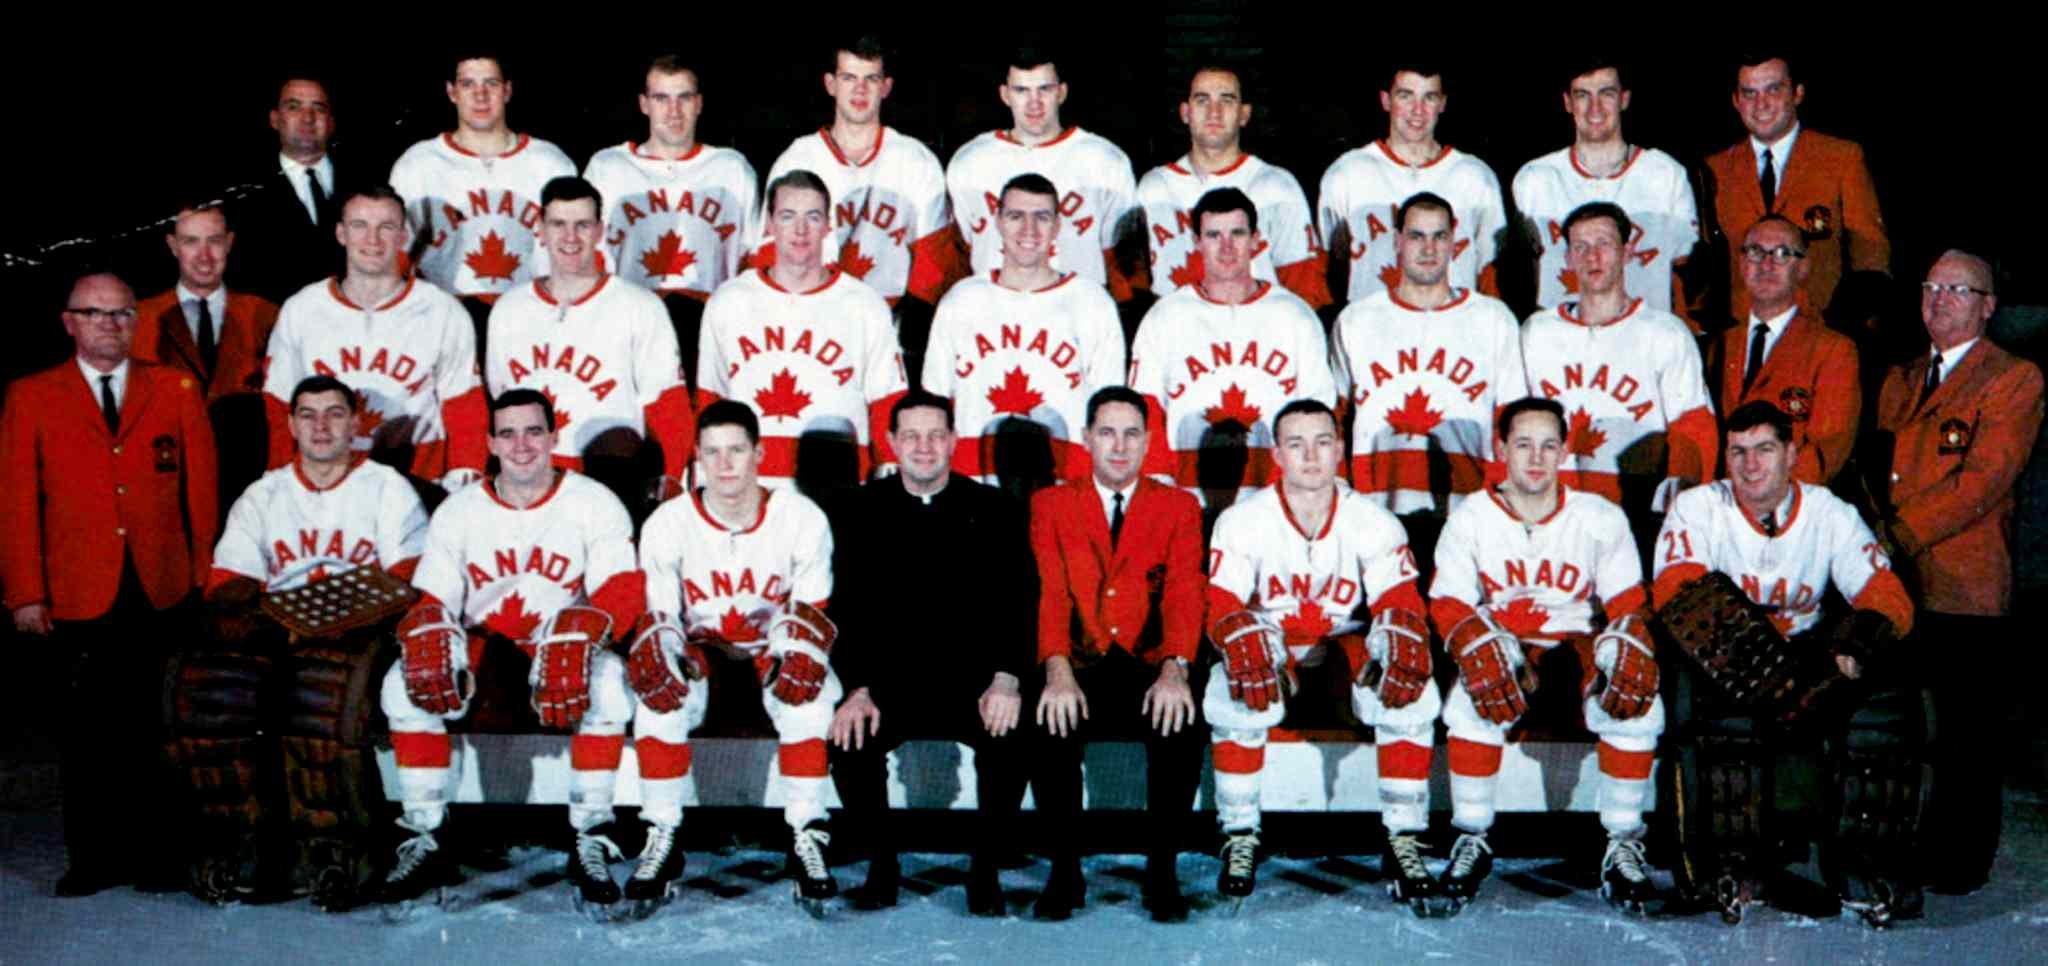 Canada's Olympic hockey team 1967-68 (l-r): Front row, Ken Broderick, Gary Dineen, Gerry Pinder, Father David Bauer (special advisor), Jack McLeod (coach and general manager), Morris Mott, Fran Huck, Wayne Stephenson. Middle row, Scotty Clark (trainer), Ken Esdale (assistant trainer), Barry MacKenzie, Terry O'Malley, Danny O'Shea, Brian Glennie, Steve Monteith, Ted Hargreaves, Jean Cusson, Dr. Reid Taylor, Dr. Jack Waugh (team doctors). Back row, Bud Holohan (education advisor), Herb Pinder, Marshall Johnston, Brian Harper, Gary Begg, Ray Cadieux, Billy MacMillan, Paul Conlin, Phil Reimer (publicity director).